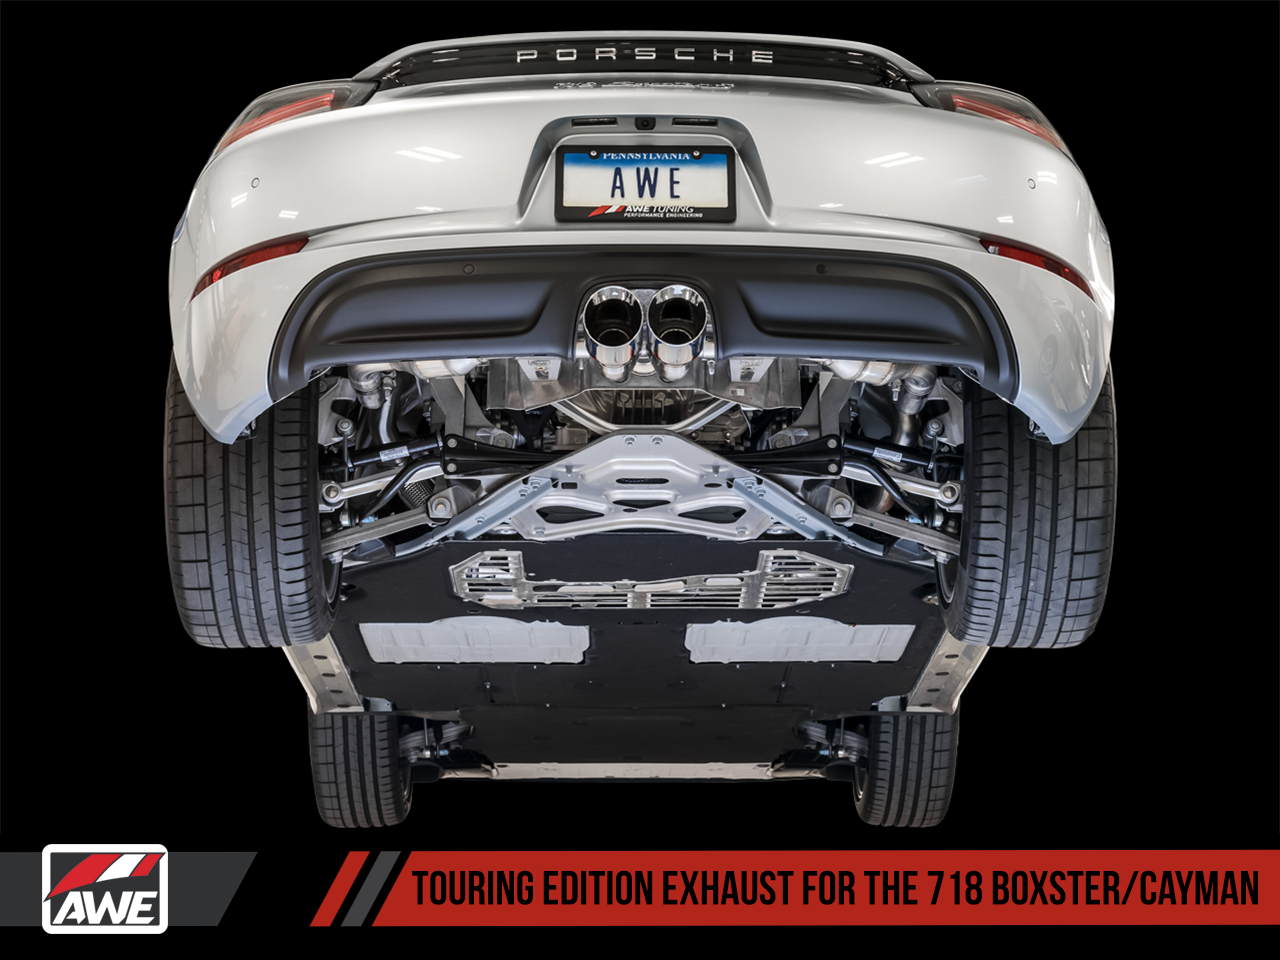 AWE Tuning Porsche 718 Boxster / Cayman Exhaust Suite